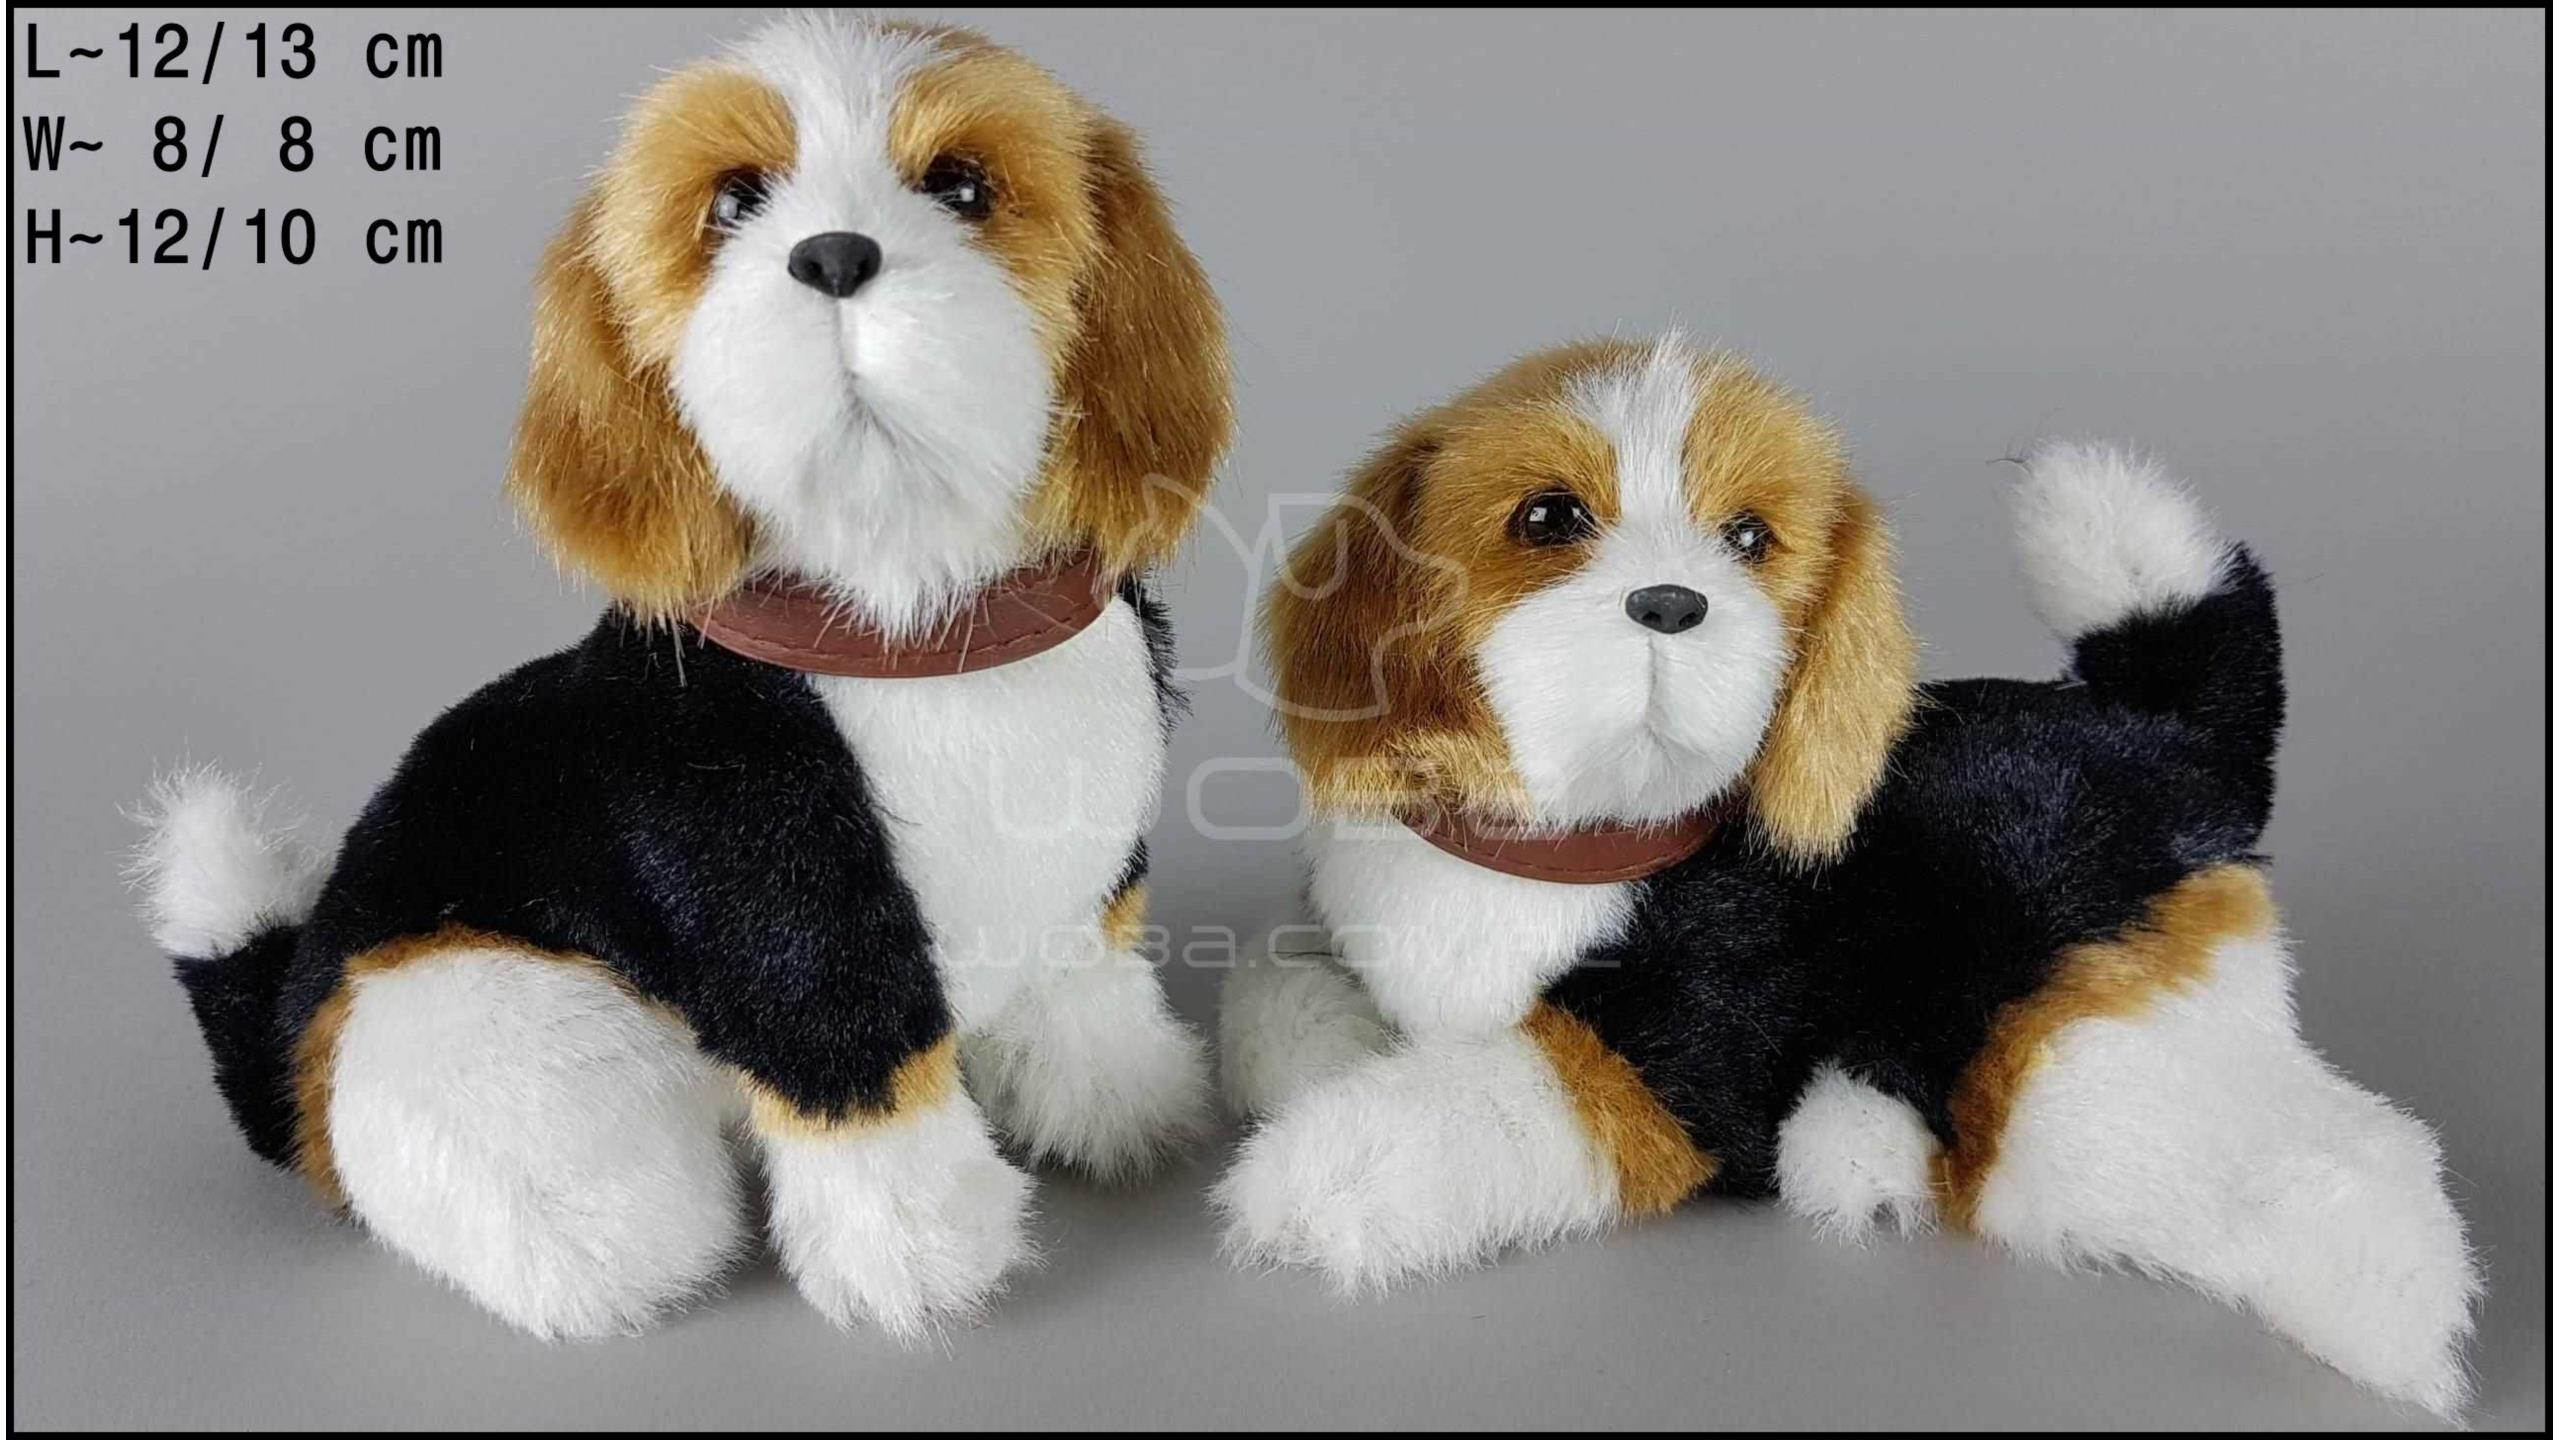 Beagle barking (2 pcs in a box)